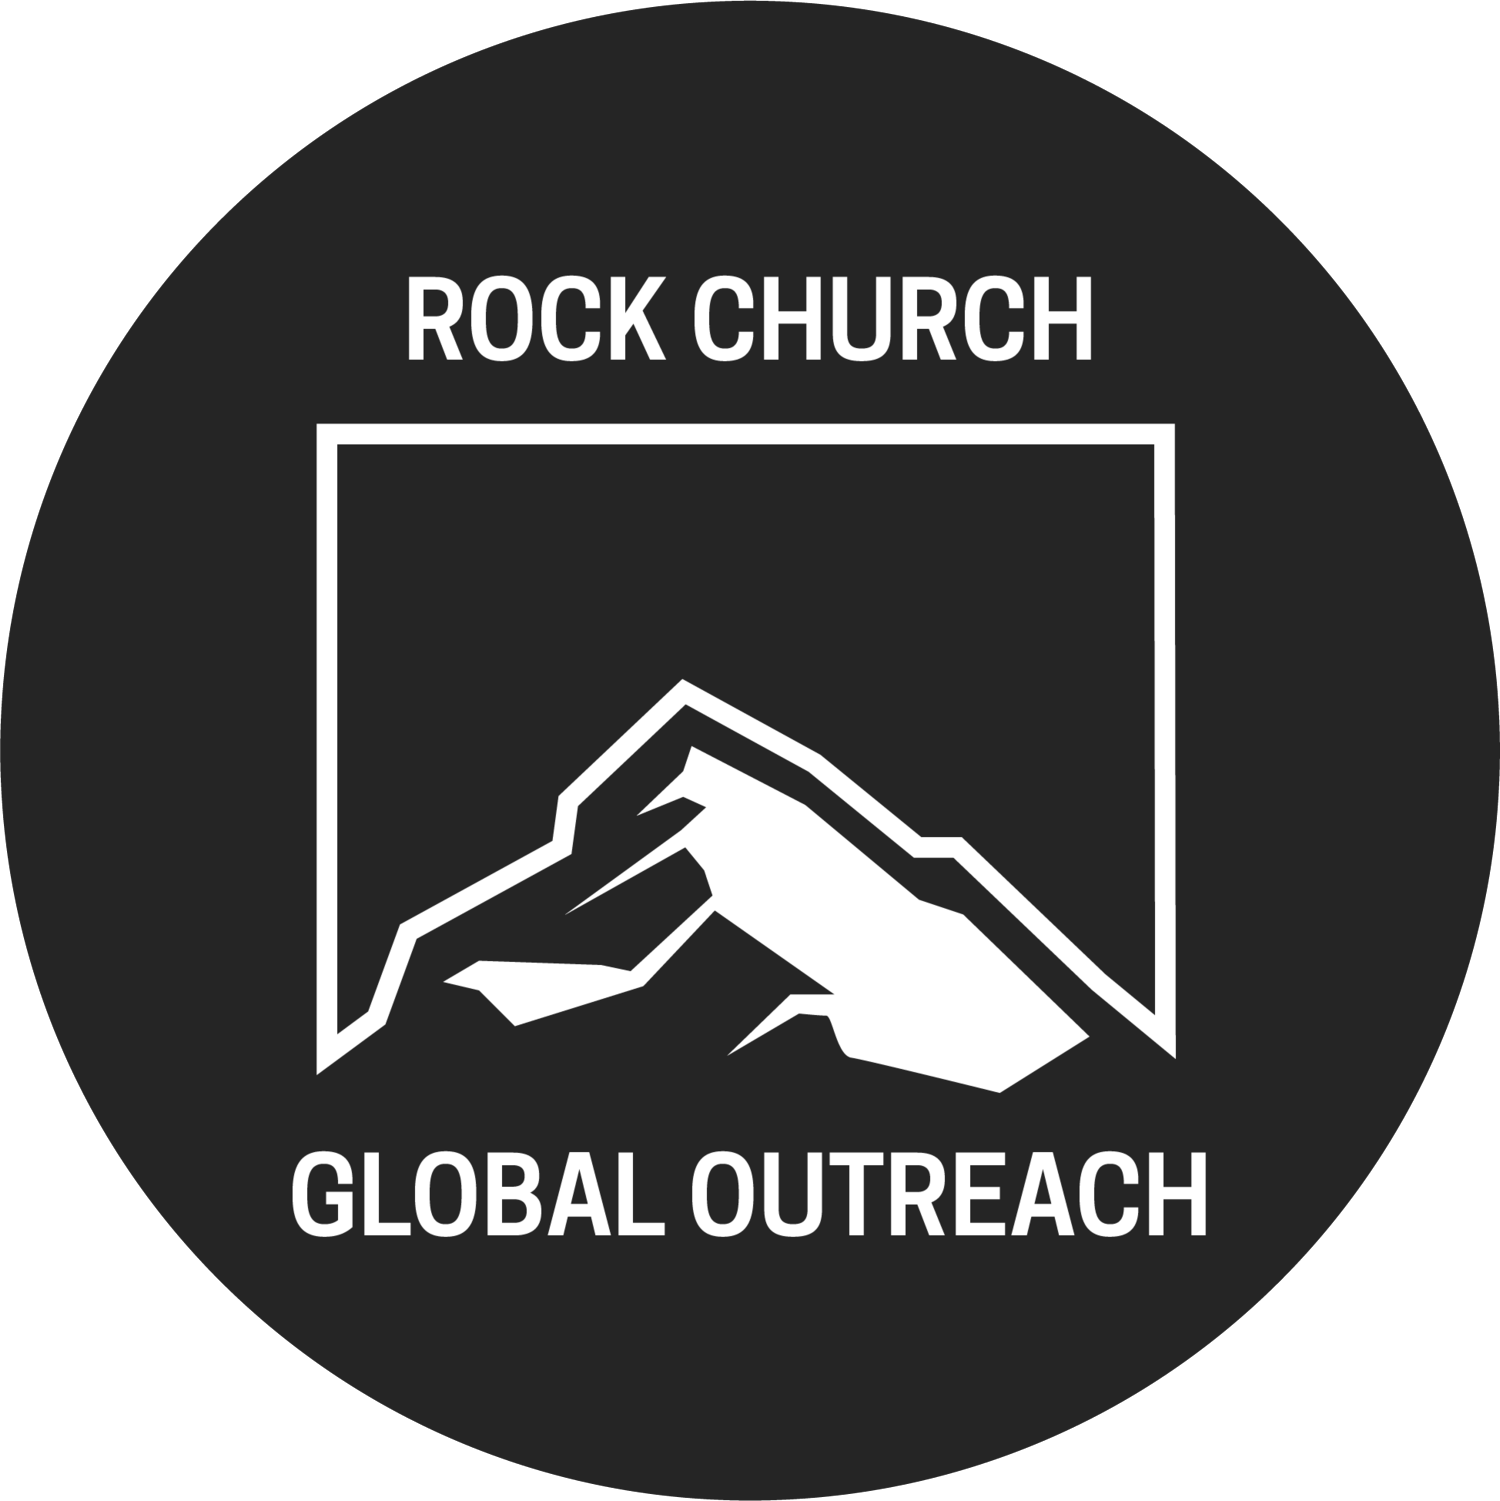 Rock Church Global Outreach